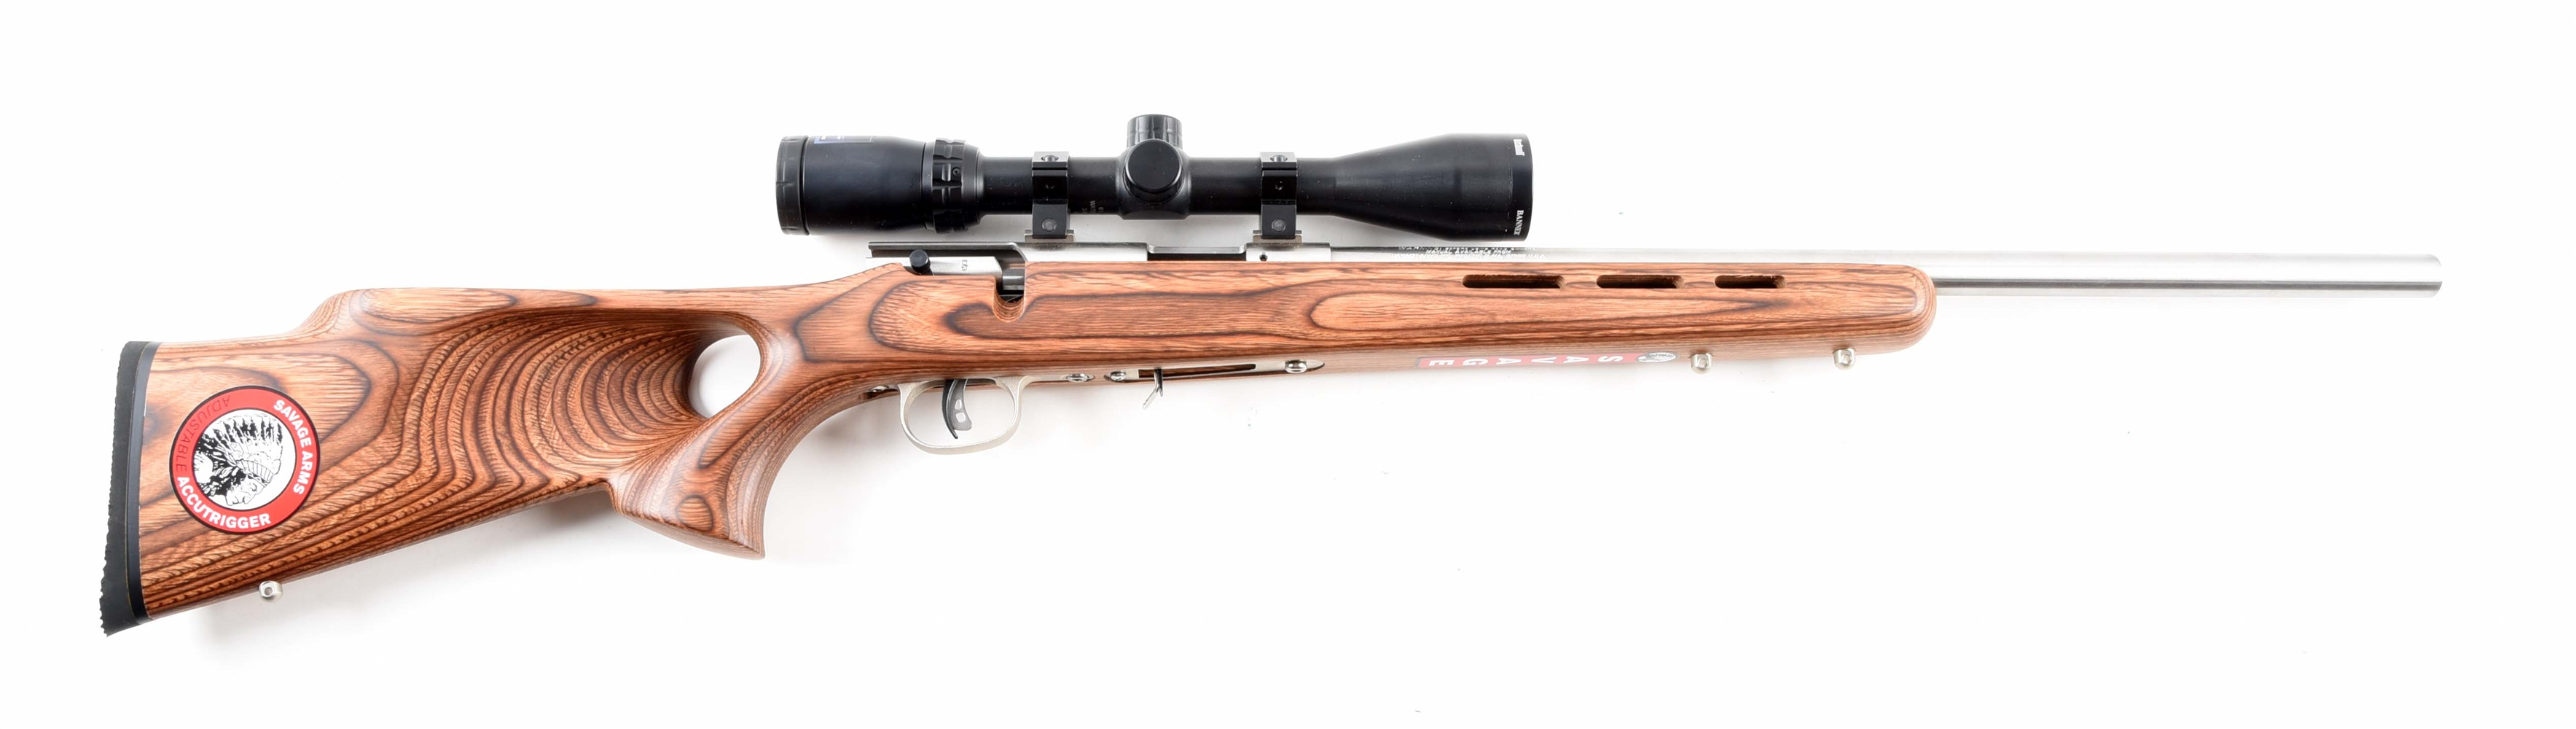 (M) NIB SAVAGE 93R17 BTVSS BOLT ACTION .17 HMR RIFLE.